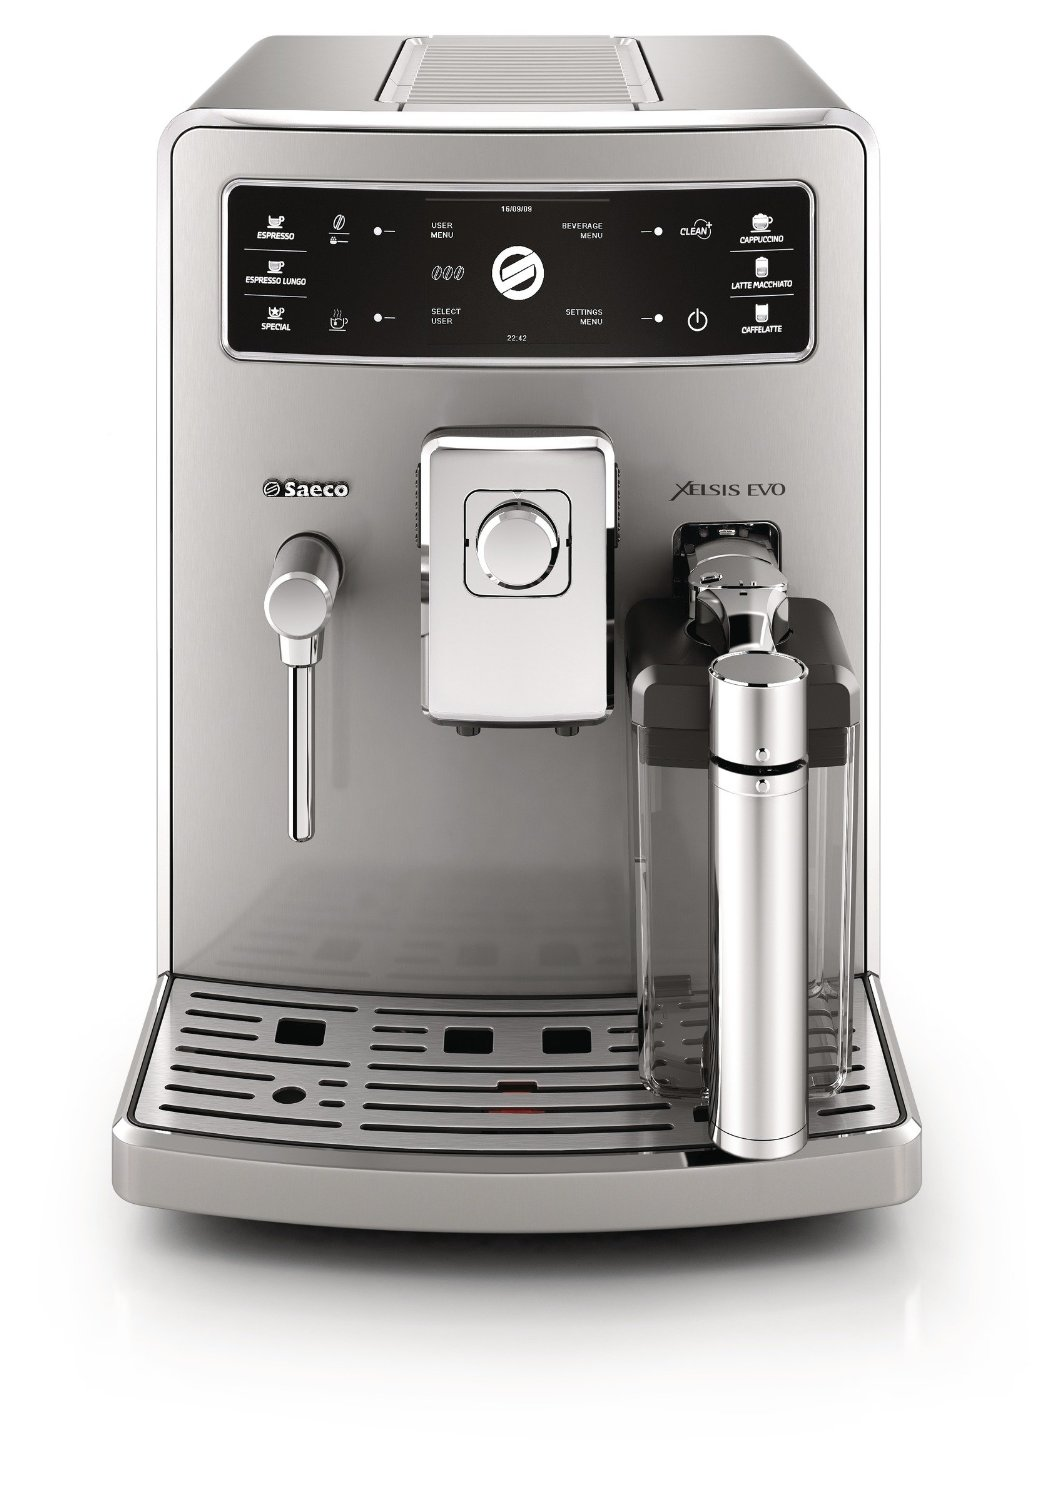 saeco phillips superautomatic espresso machine reviews coffee on fleek. Black Bedroom Furniture Sets. Home Design Ideas